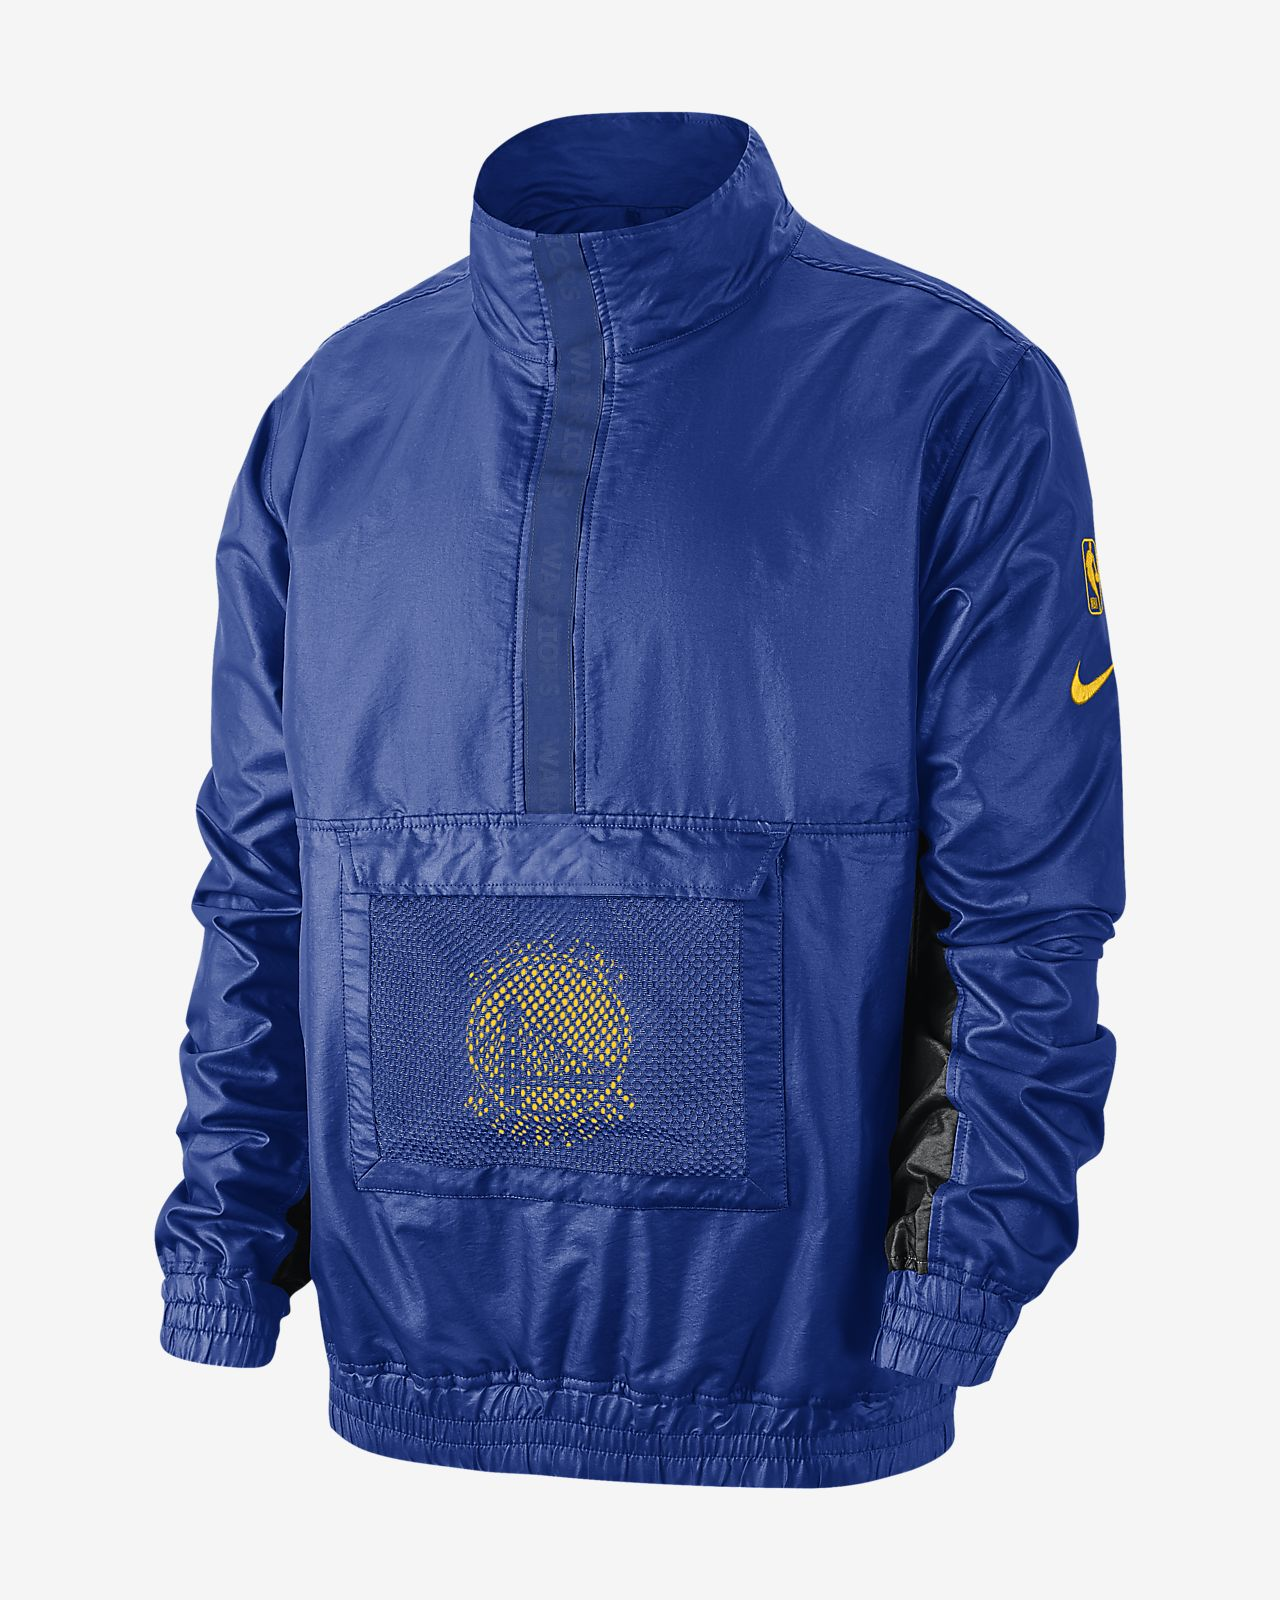 Golden State Warriors Nike Men's Lightweight NBA Jacket